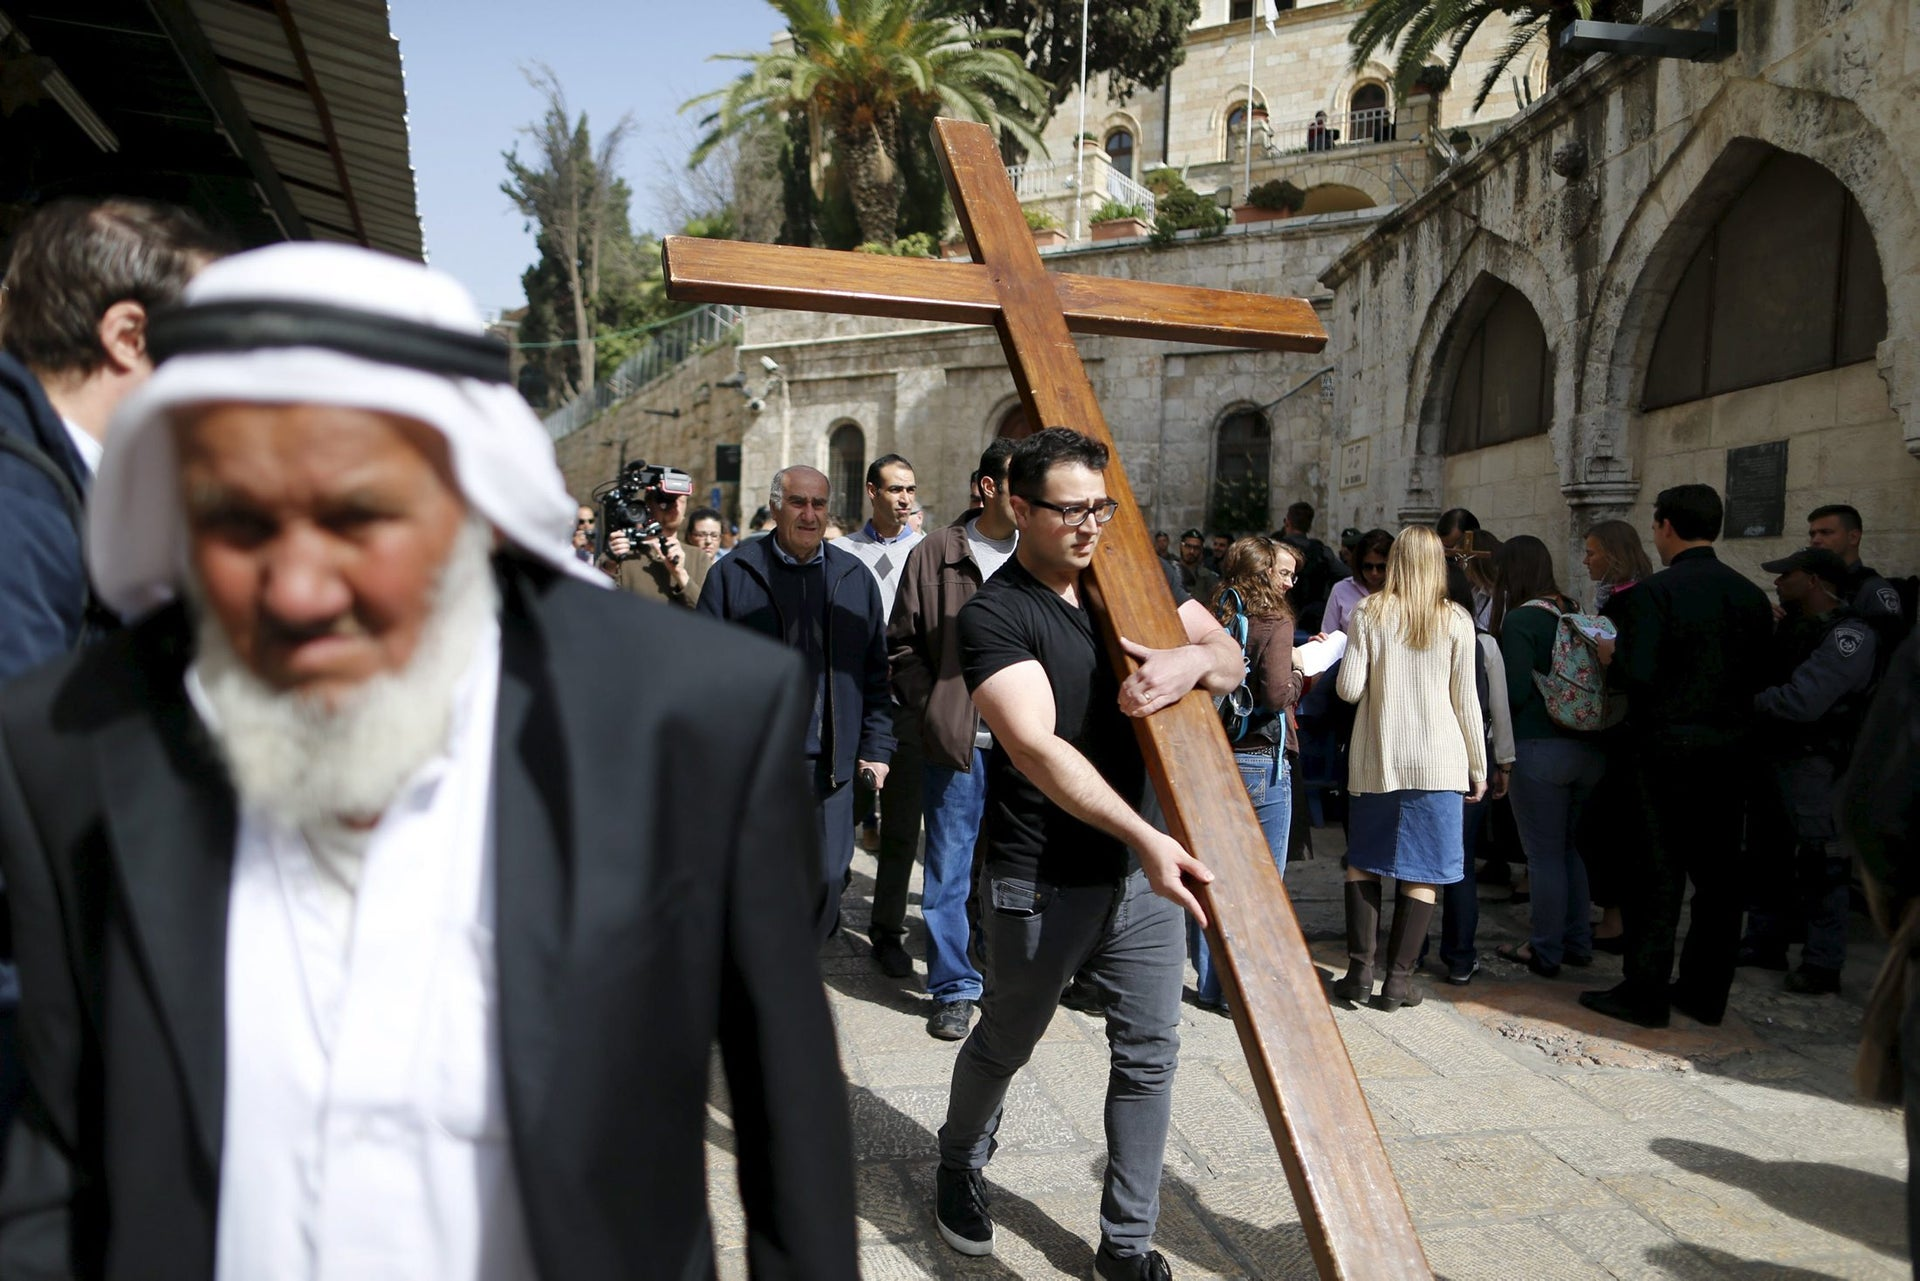 A worshipper carries a cross during a Good Friday procession through the Via Dolorosa in Jerusalem's Old City March 25, 2016.